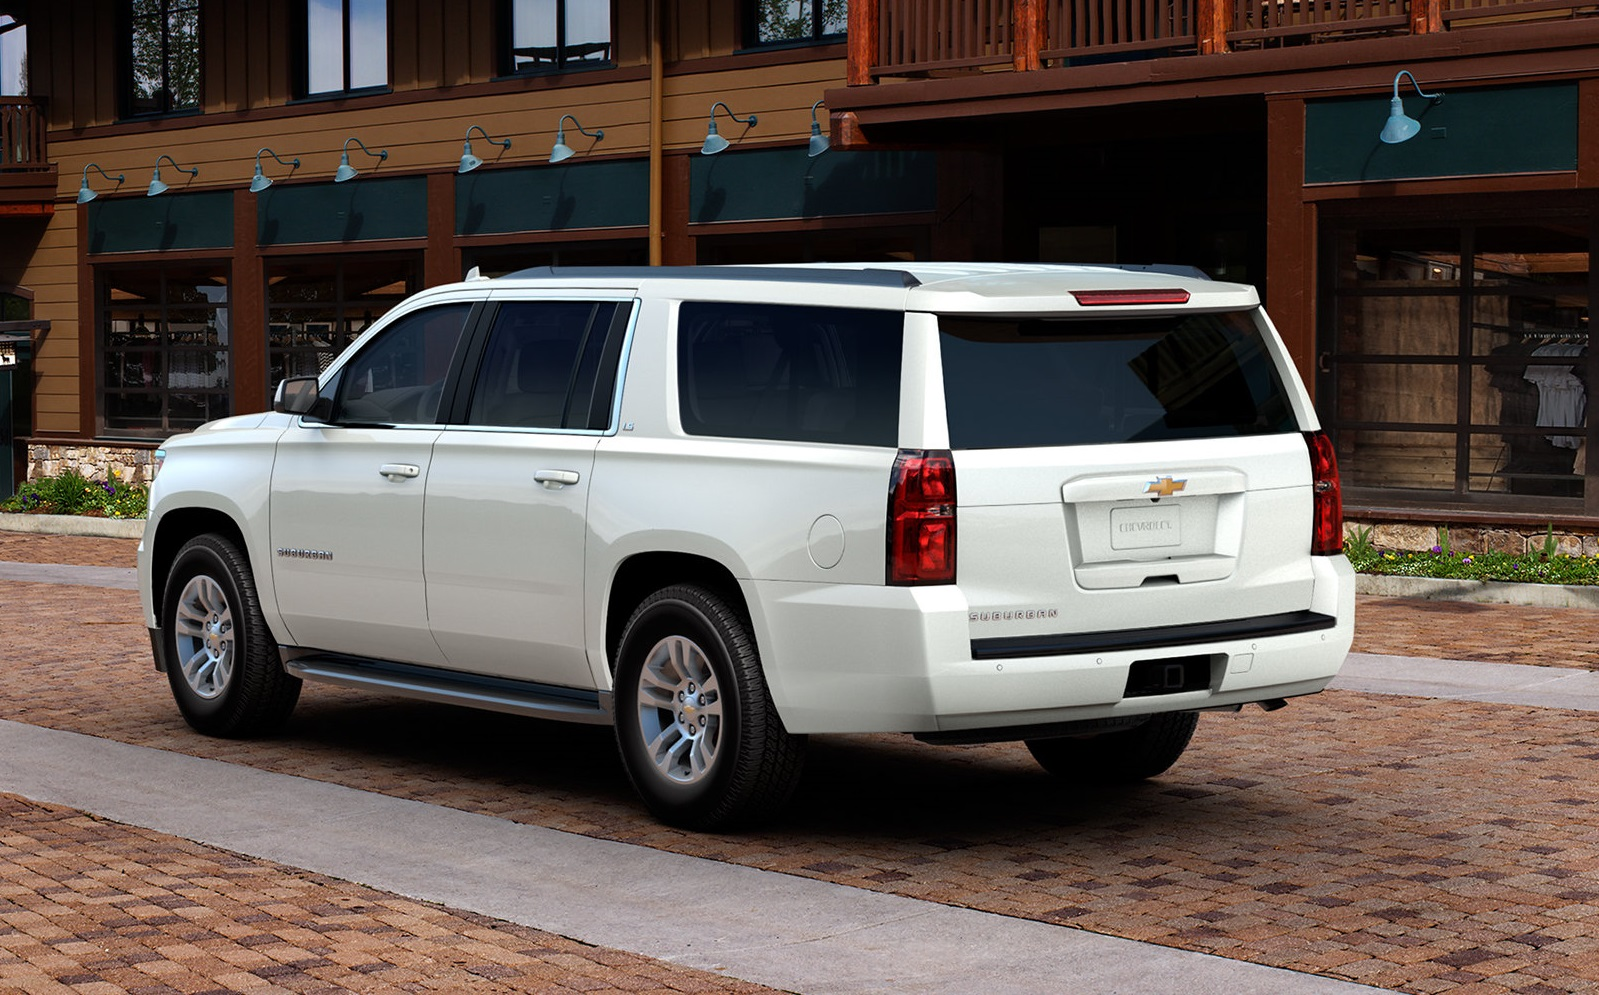 Libertyville IL - 2018 Chevrolet Suburban Overview